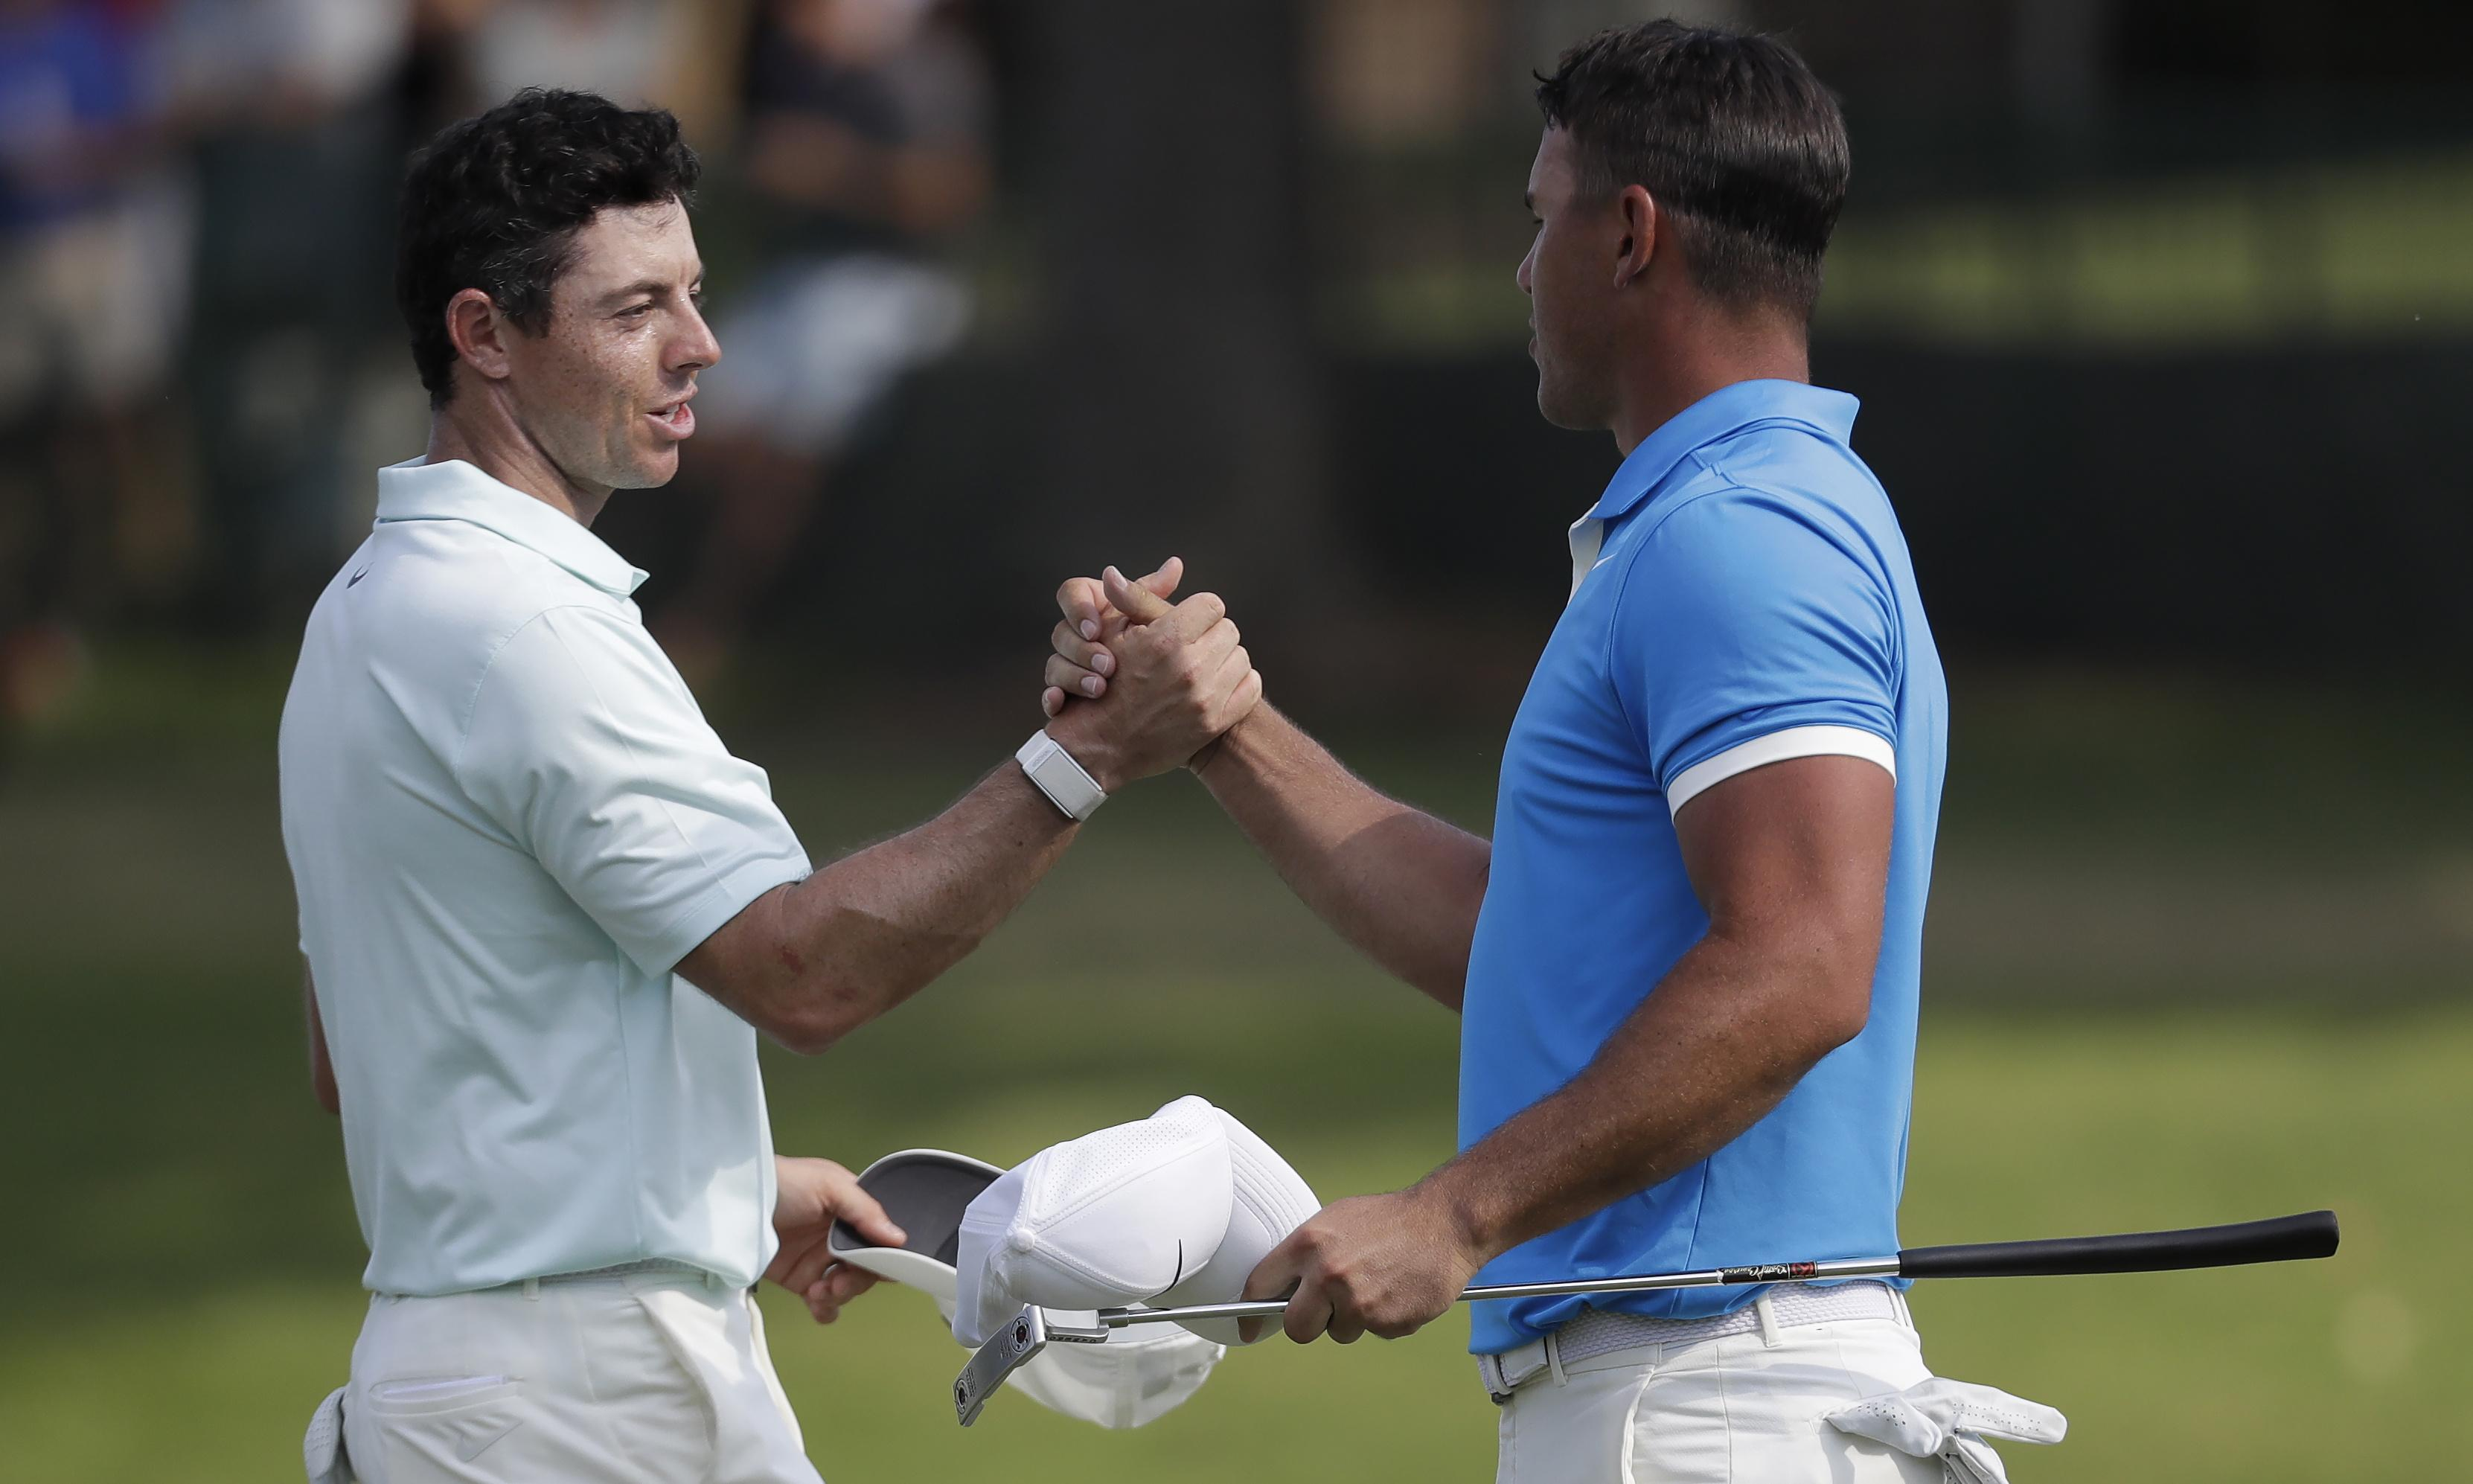 Brooks Koepka sees off Rory McIlroy to win his first WGC title by three shots